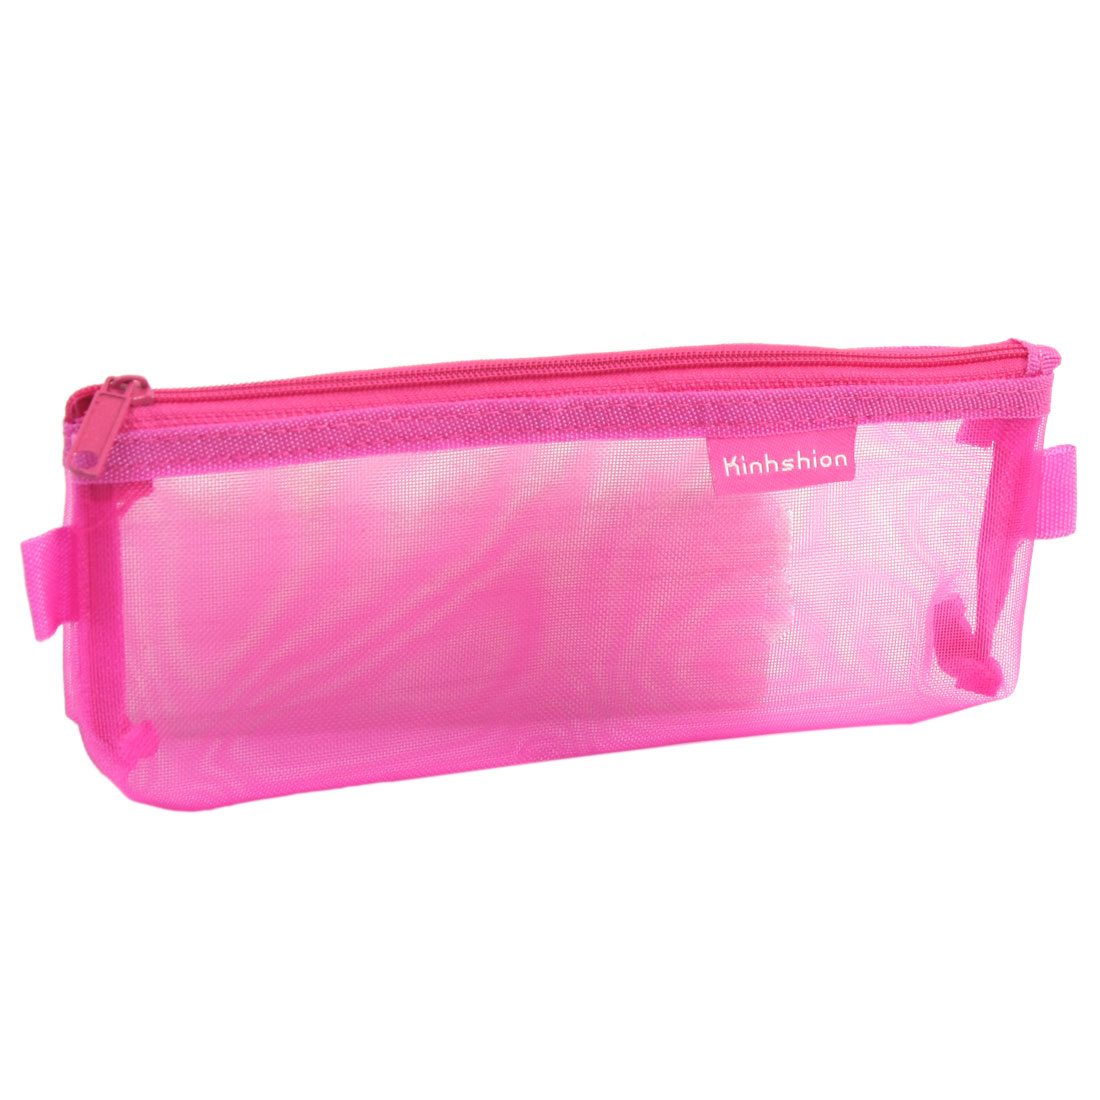 Zip up Nylon Mesh Pencil Pen Stationary Organizer Case Bag Fuchsia for Students